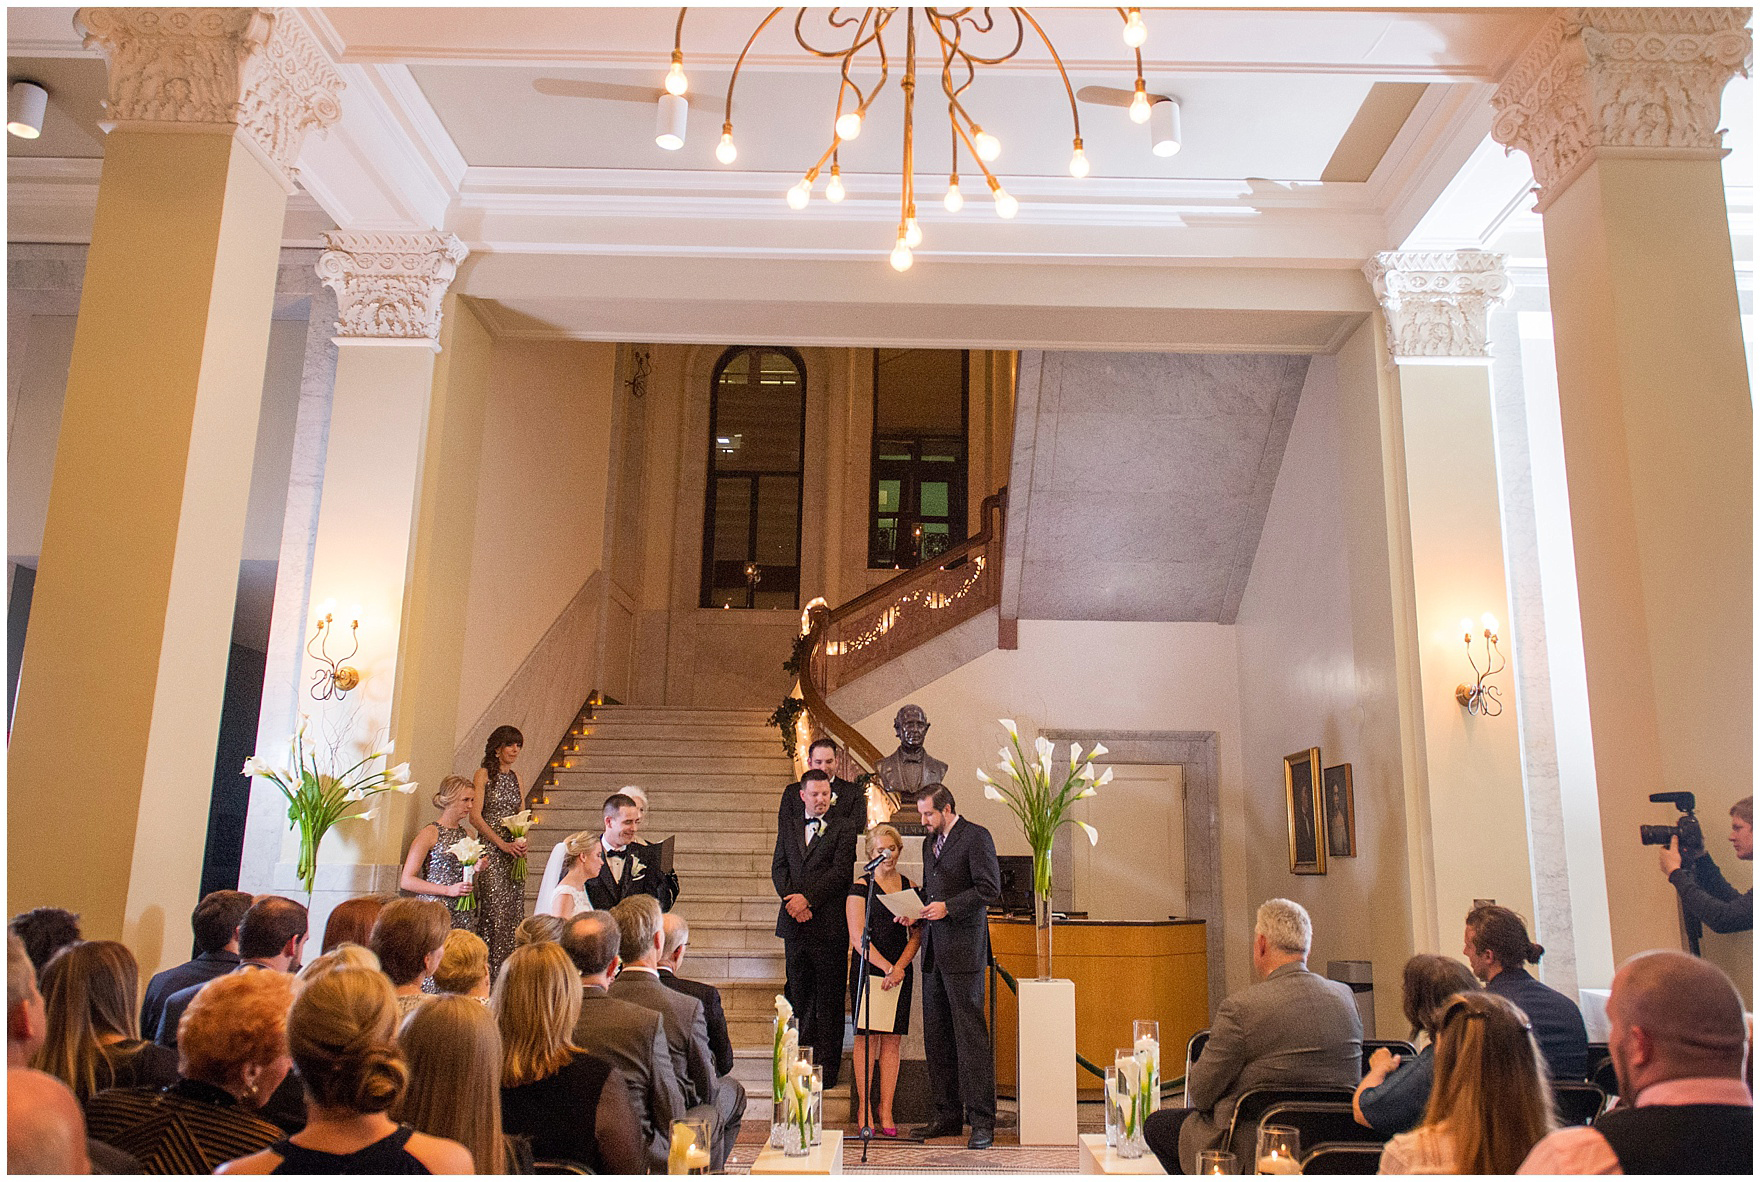 Friends give a speech during a Newberry Library Chicago wedding.